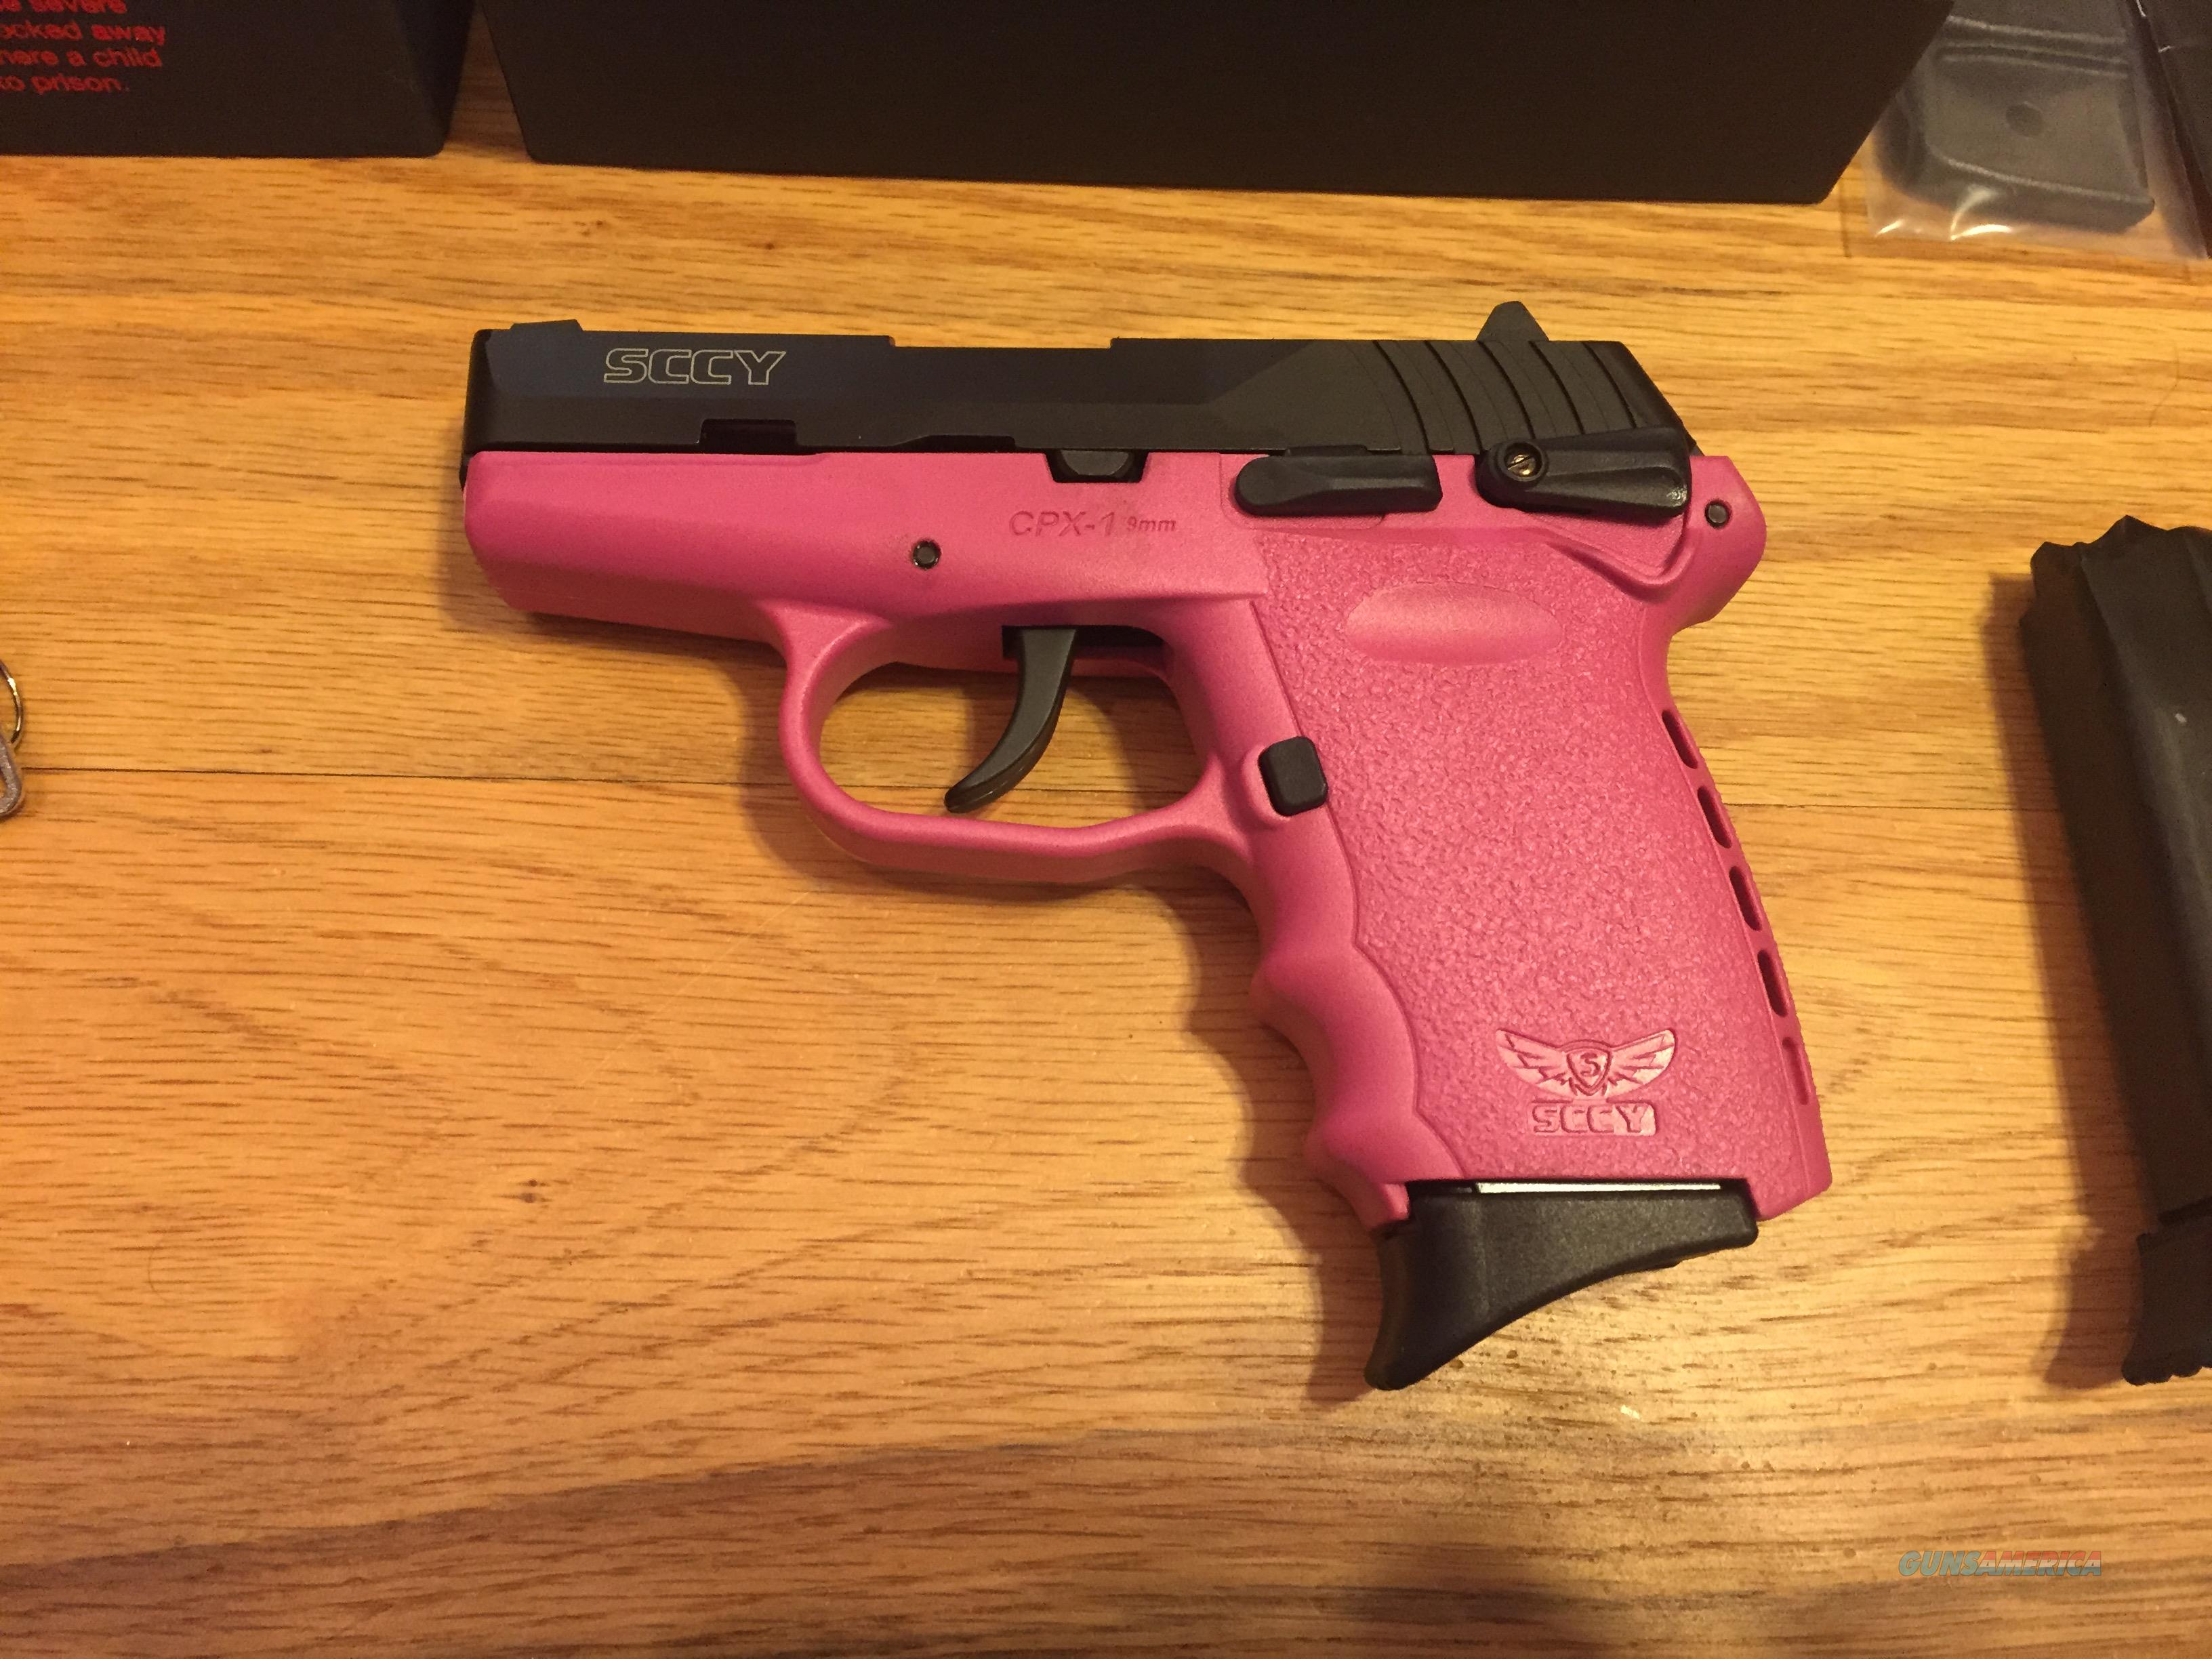 SCCY CPX1 CBPK 9mm Black and Pink w/safety New in Box (No card fees added at Deals on Guns)  Guns > Pistols > SCCY Pistols > CPX1